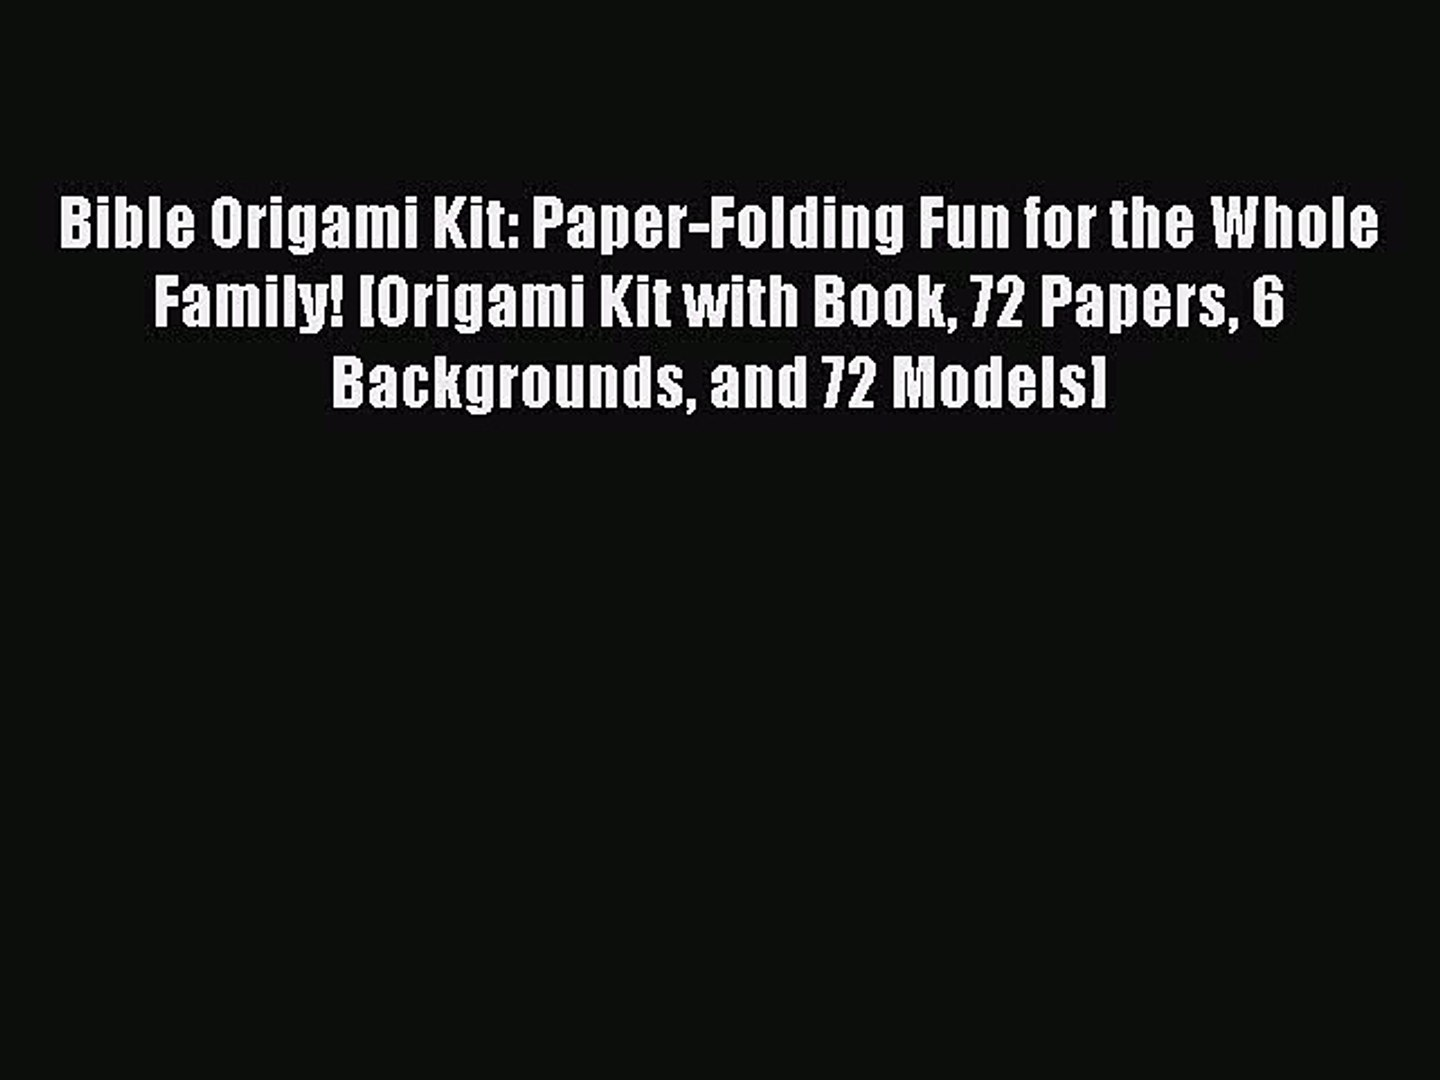 Dover Fun Kits Ser.: Origami Fun Kit for Beginners :